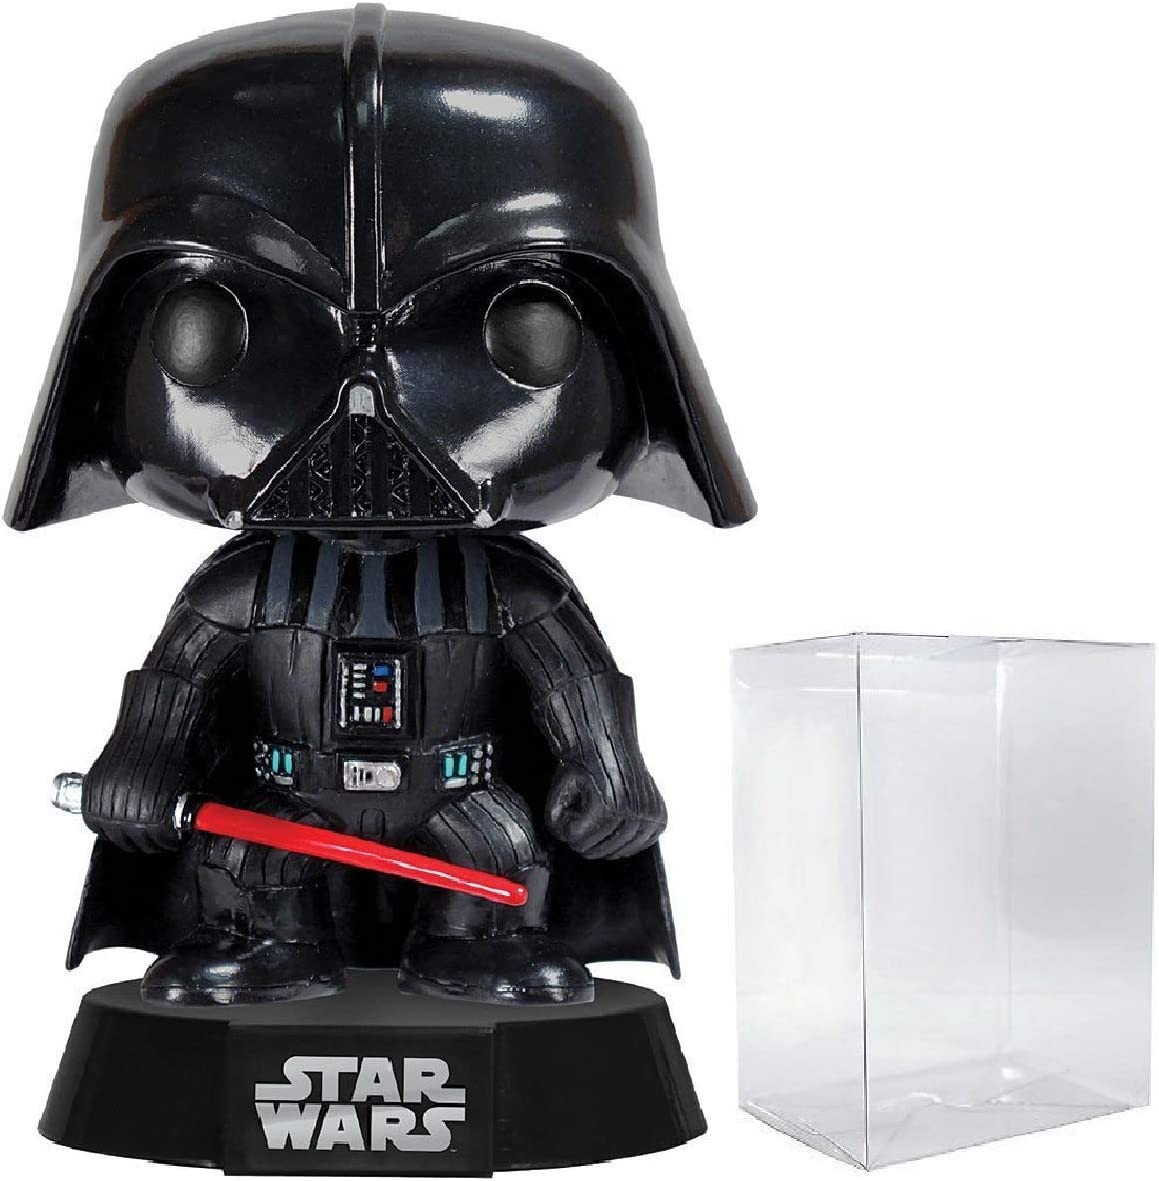 STAR WARS DARTH VADER BLOX BOBBLE-HEAD VINYL FIGURE BRAND NEW GREAT GIFT